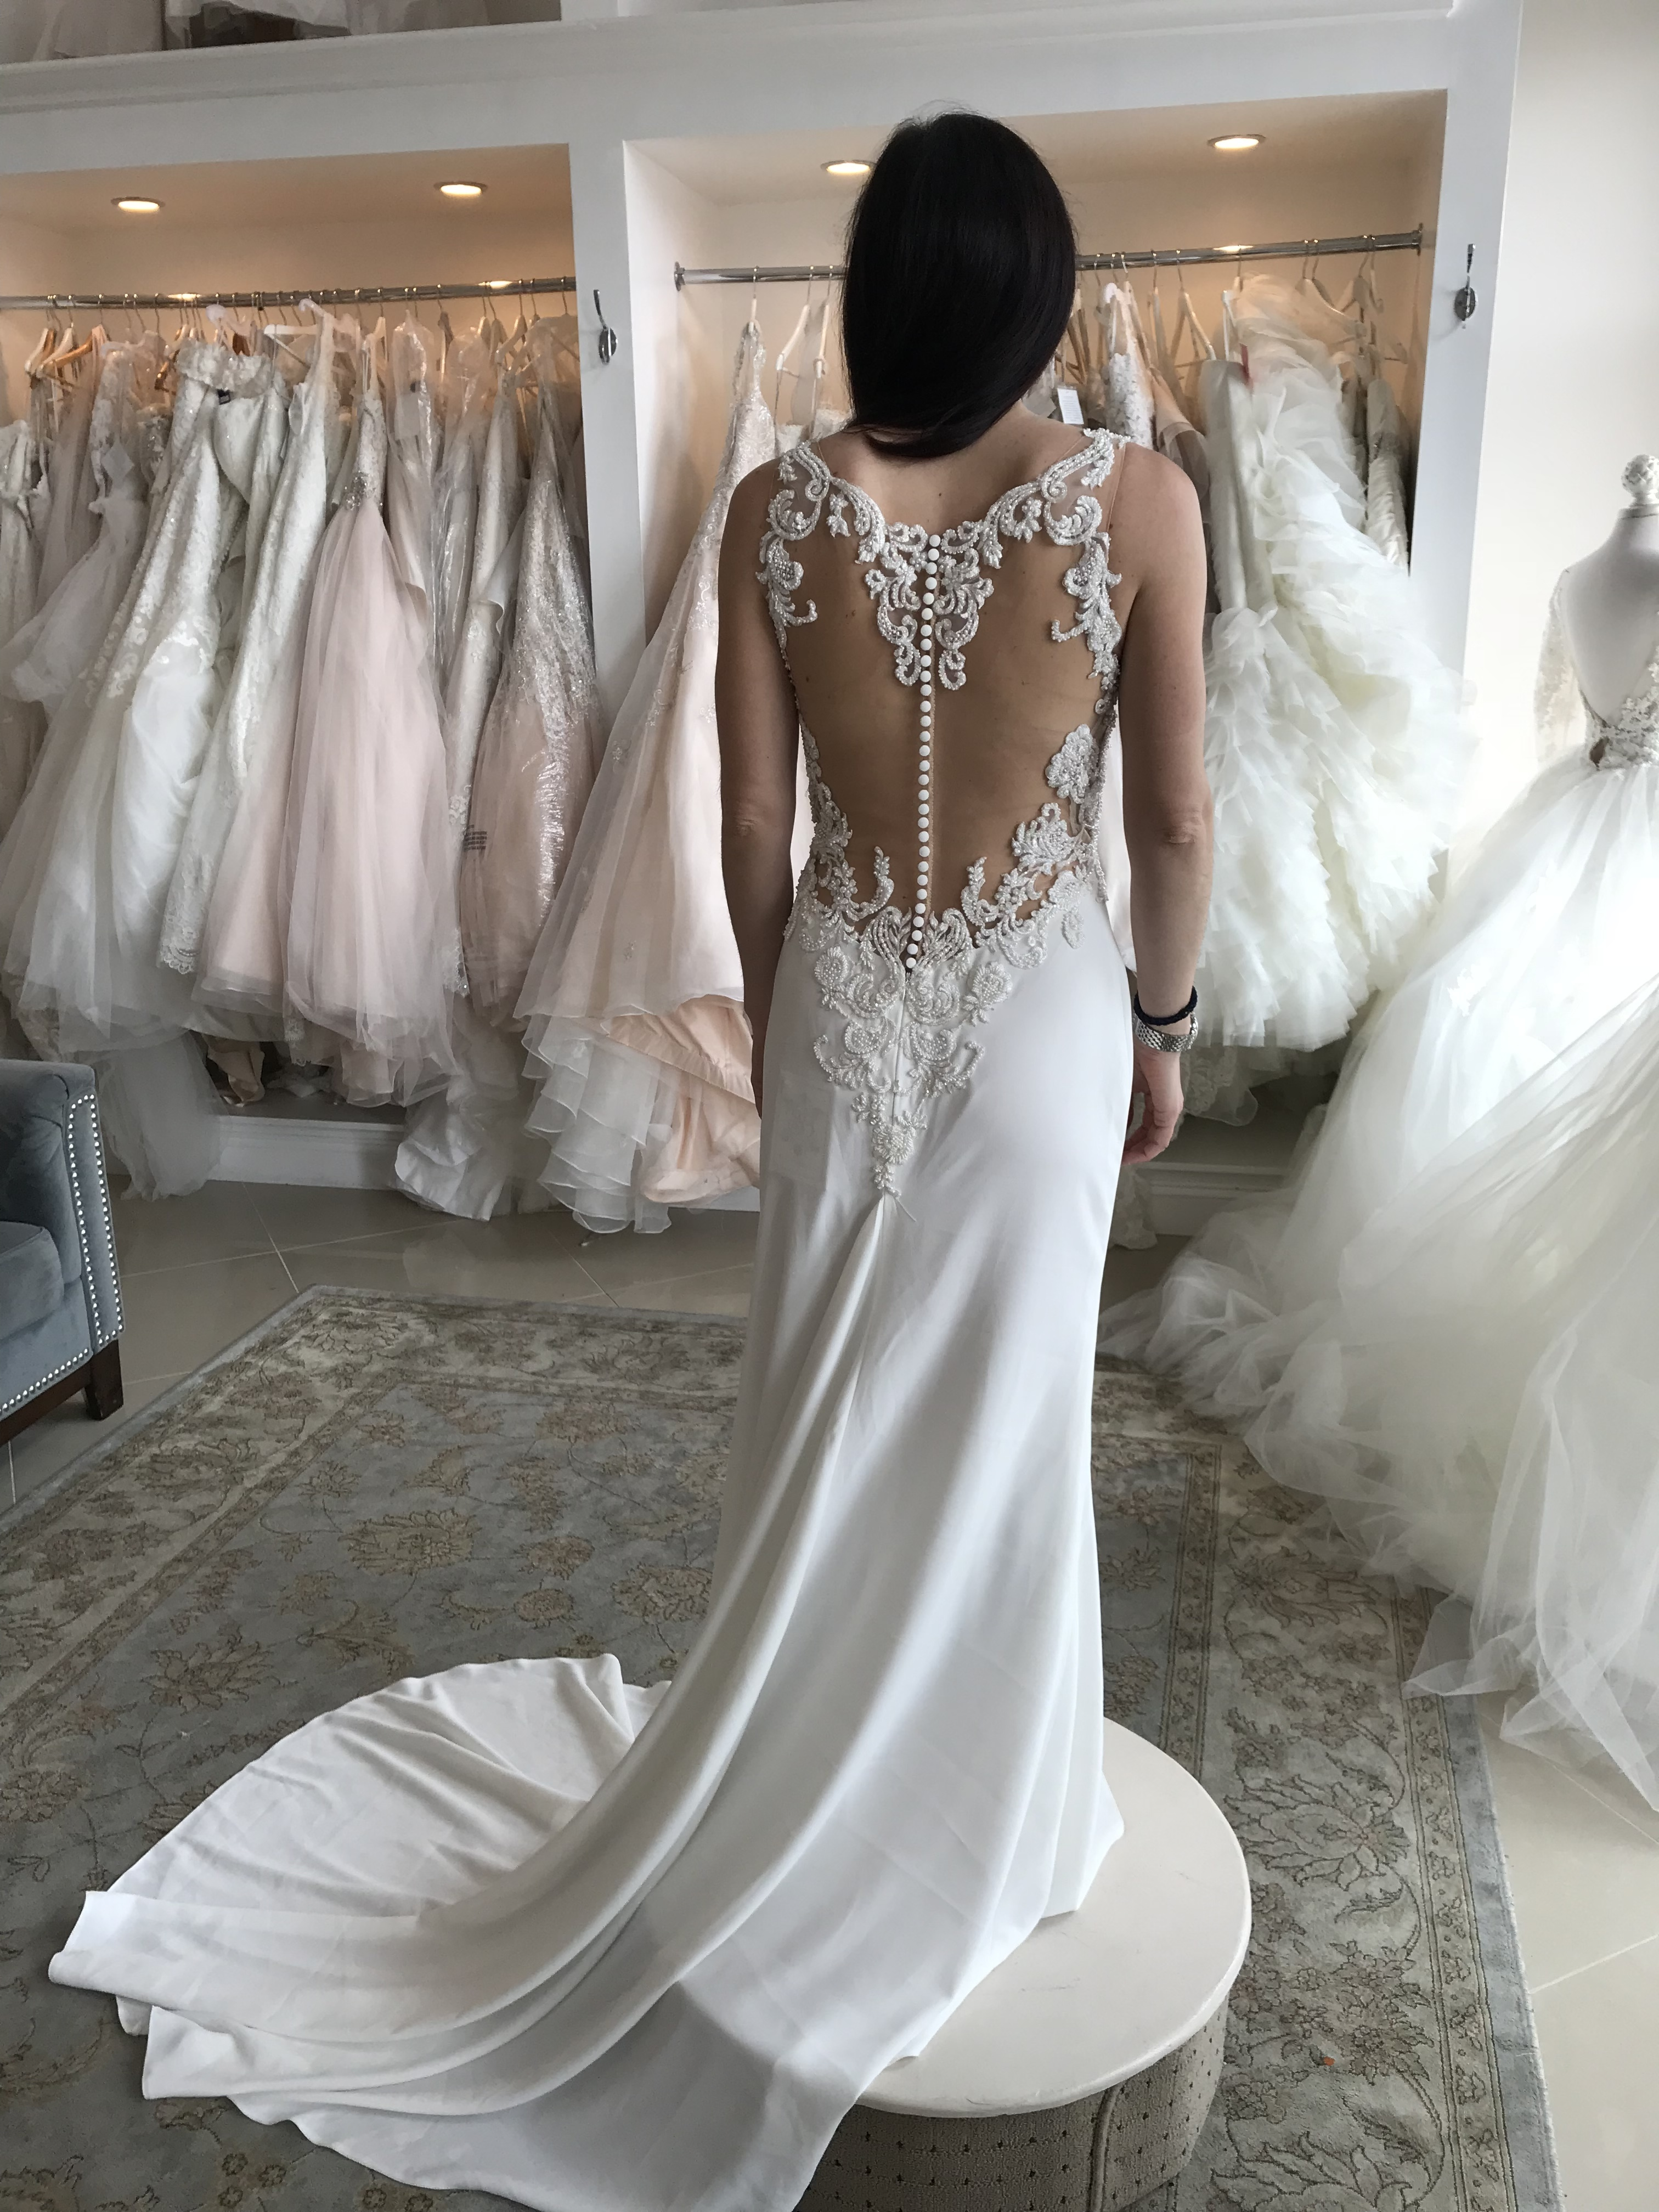 Demetrios - 796- never worn, never altered size 6 - $600 - (52% OFF)